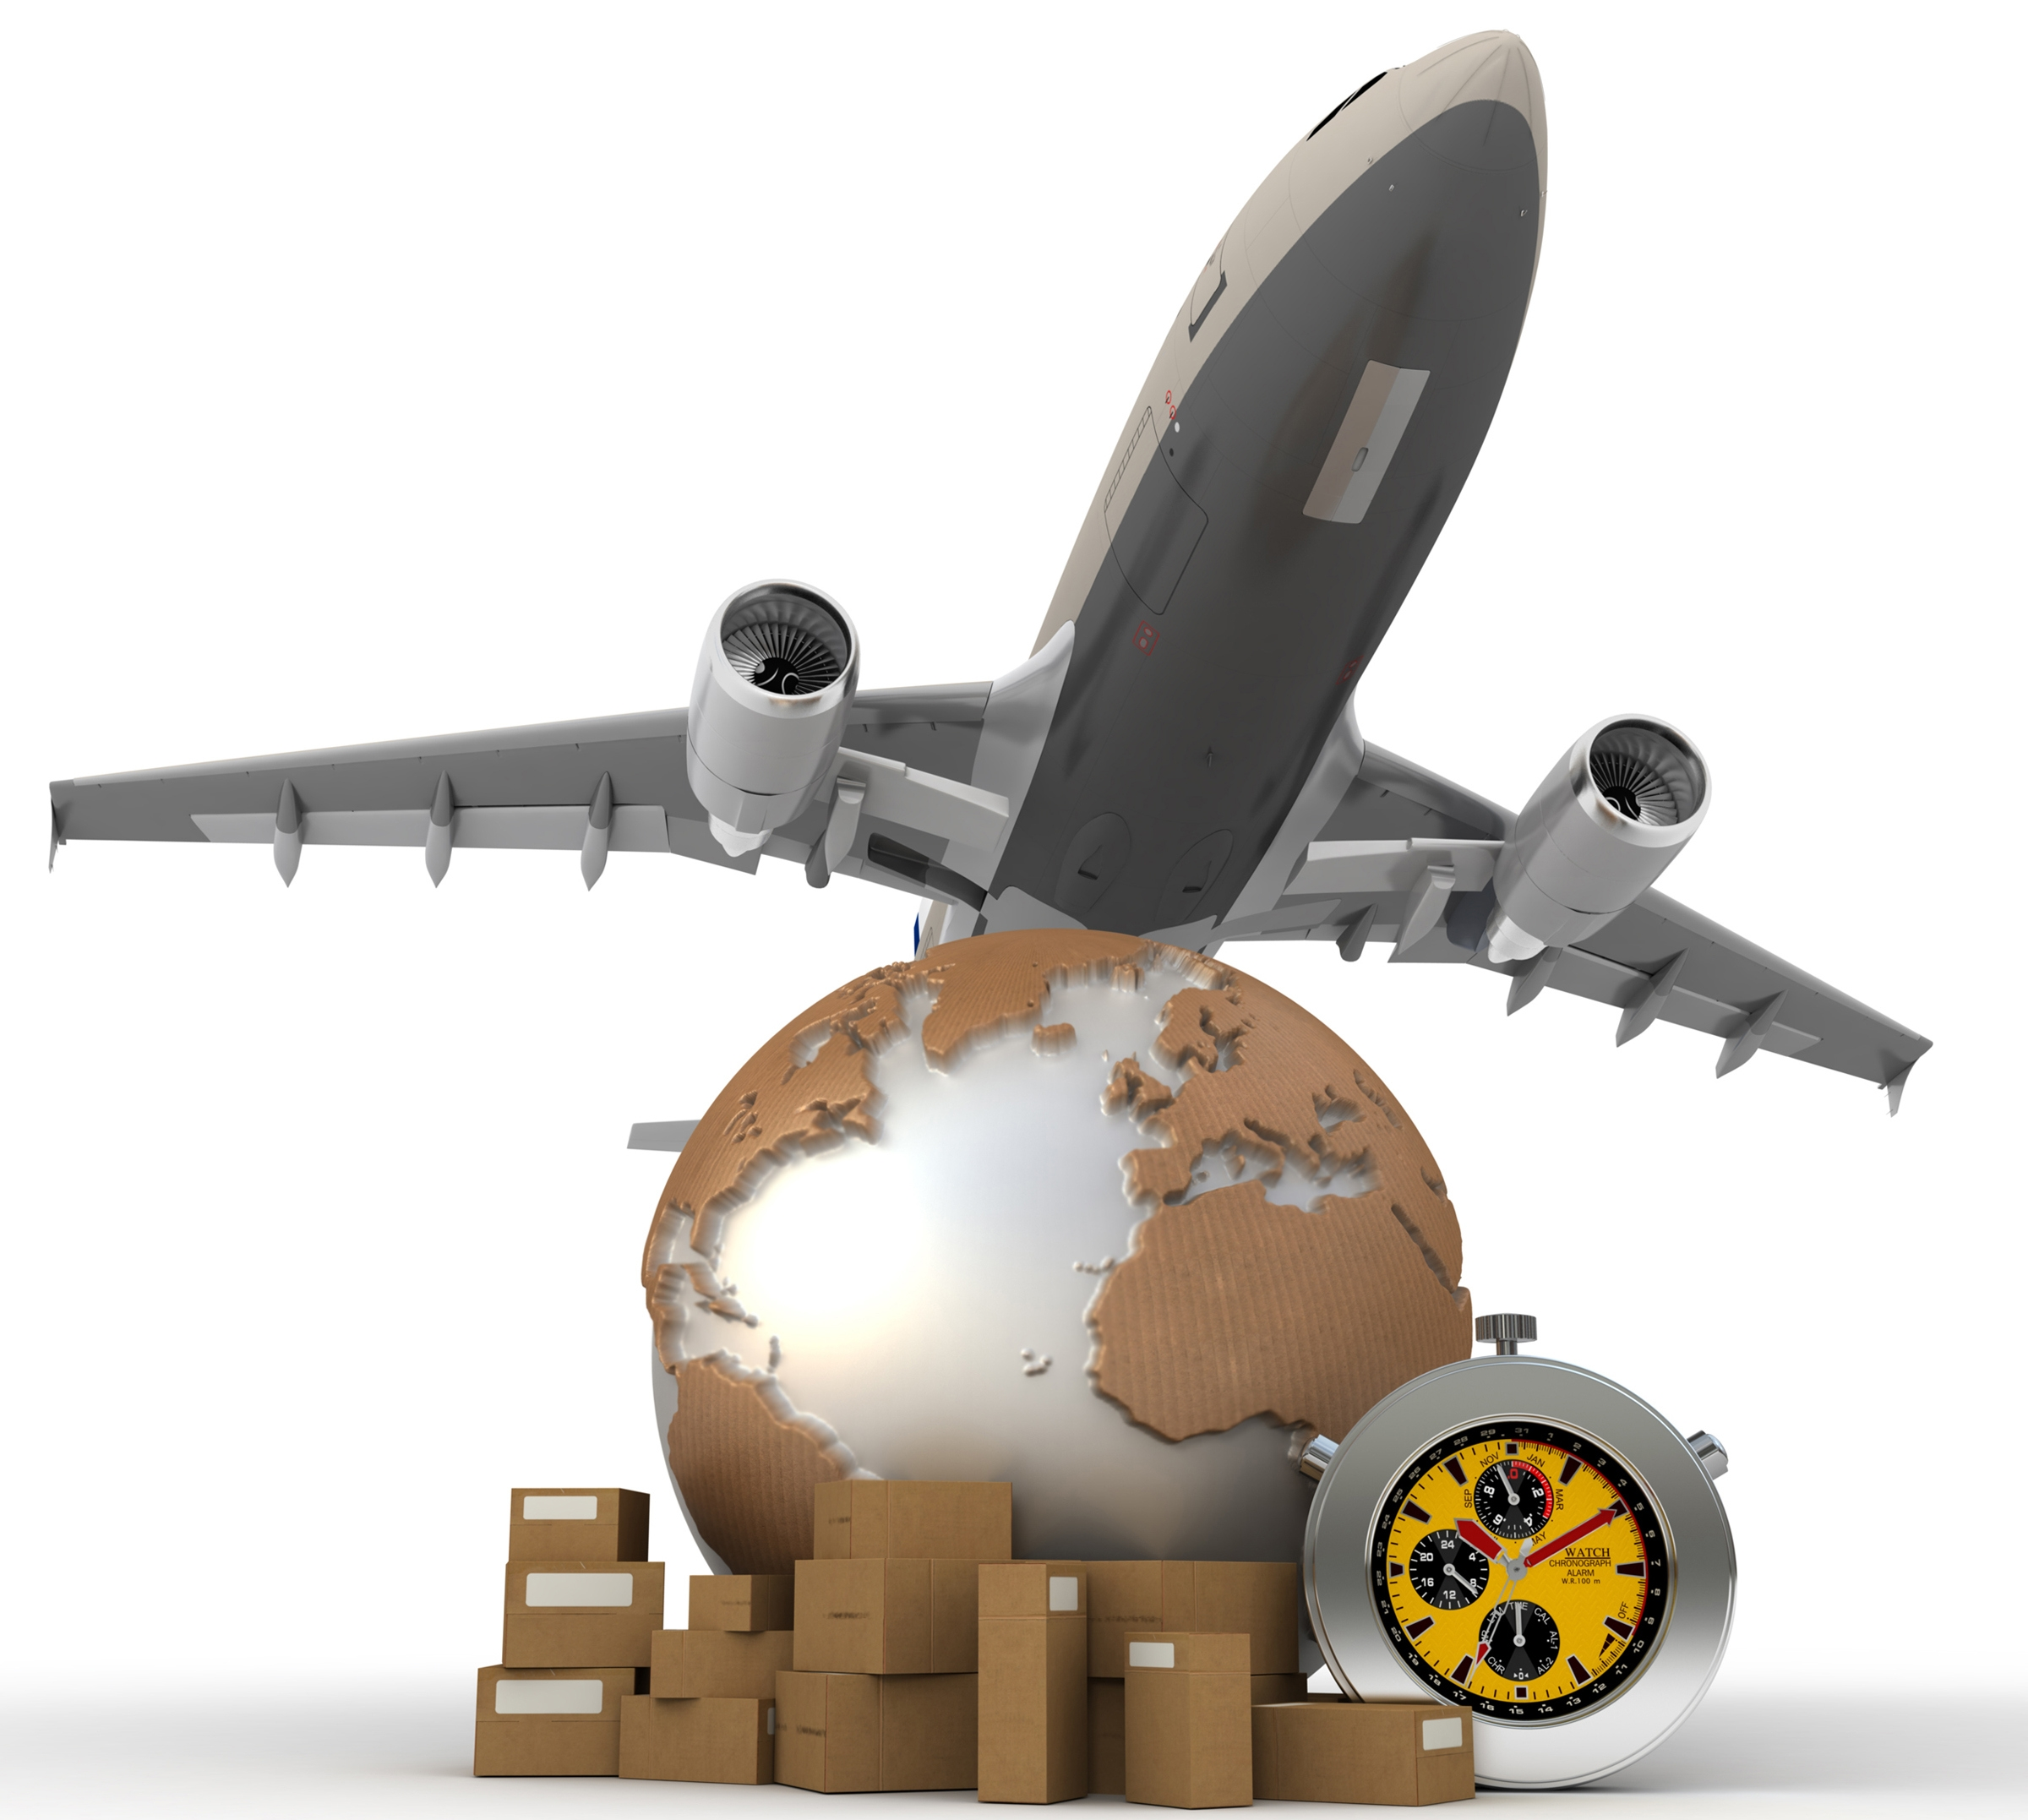 Benefits - Focus on your core passenger business while generating incremental cargo revenue.Reduce capital investment, improve cargo operational performance and KPIs.Access an industry leading, fully cloud-based air cargo technology platform.Expand market access through next generation hub connection and interlining solutions.